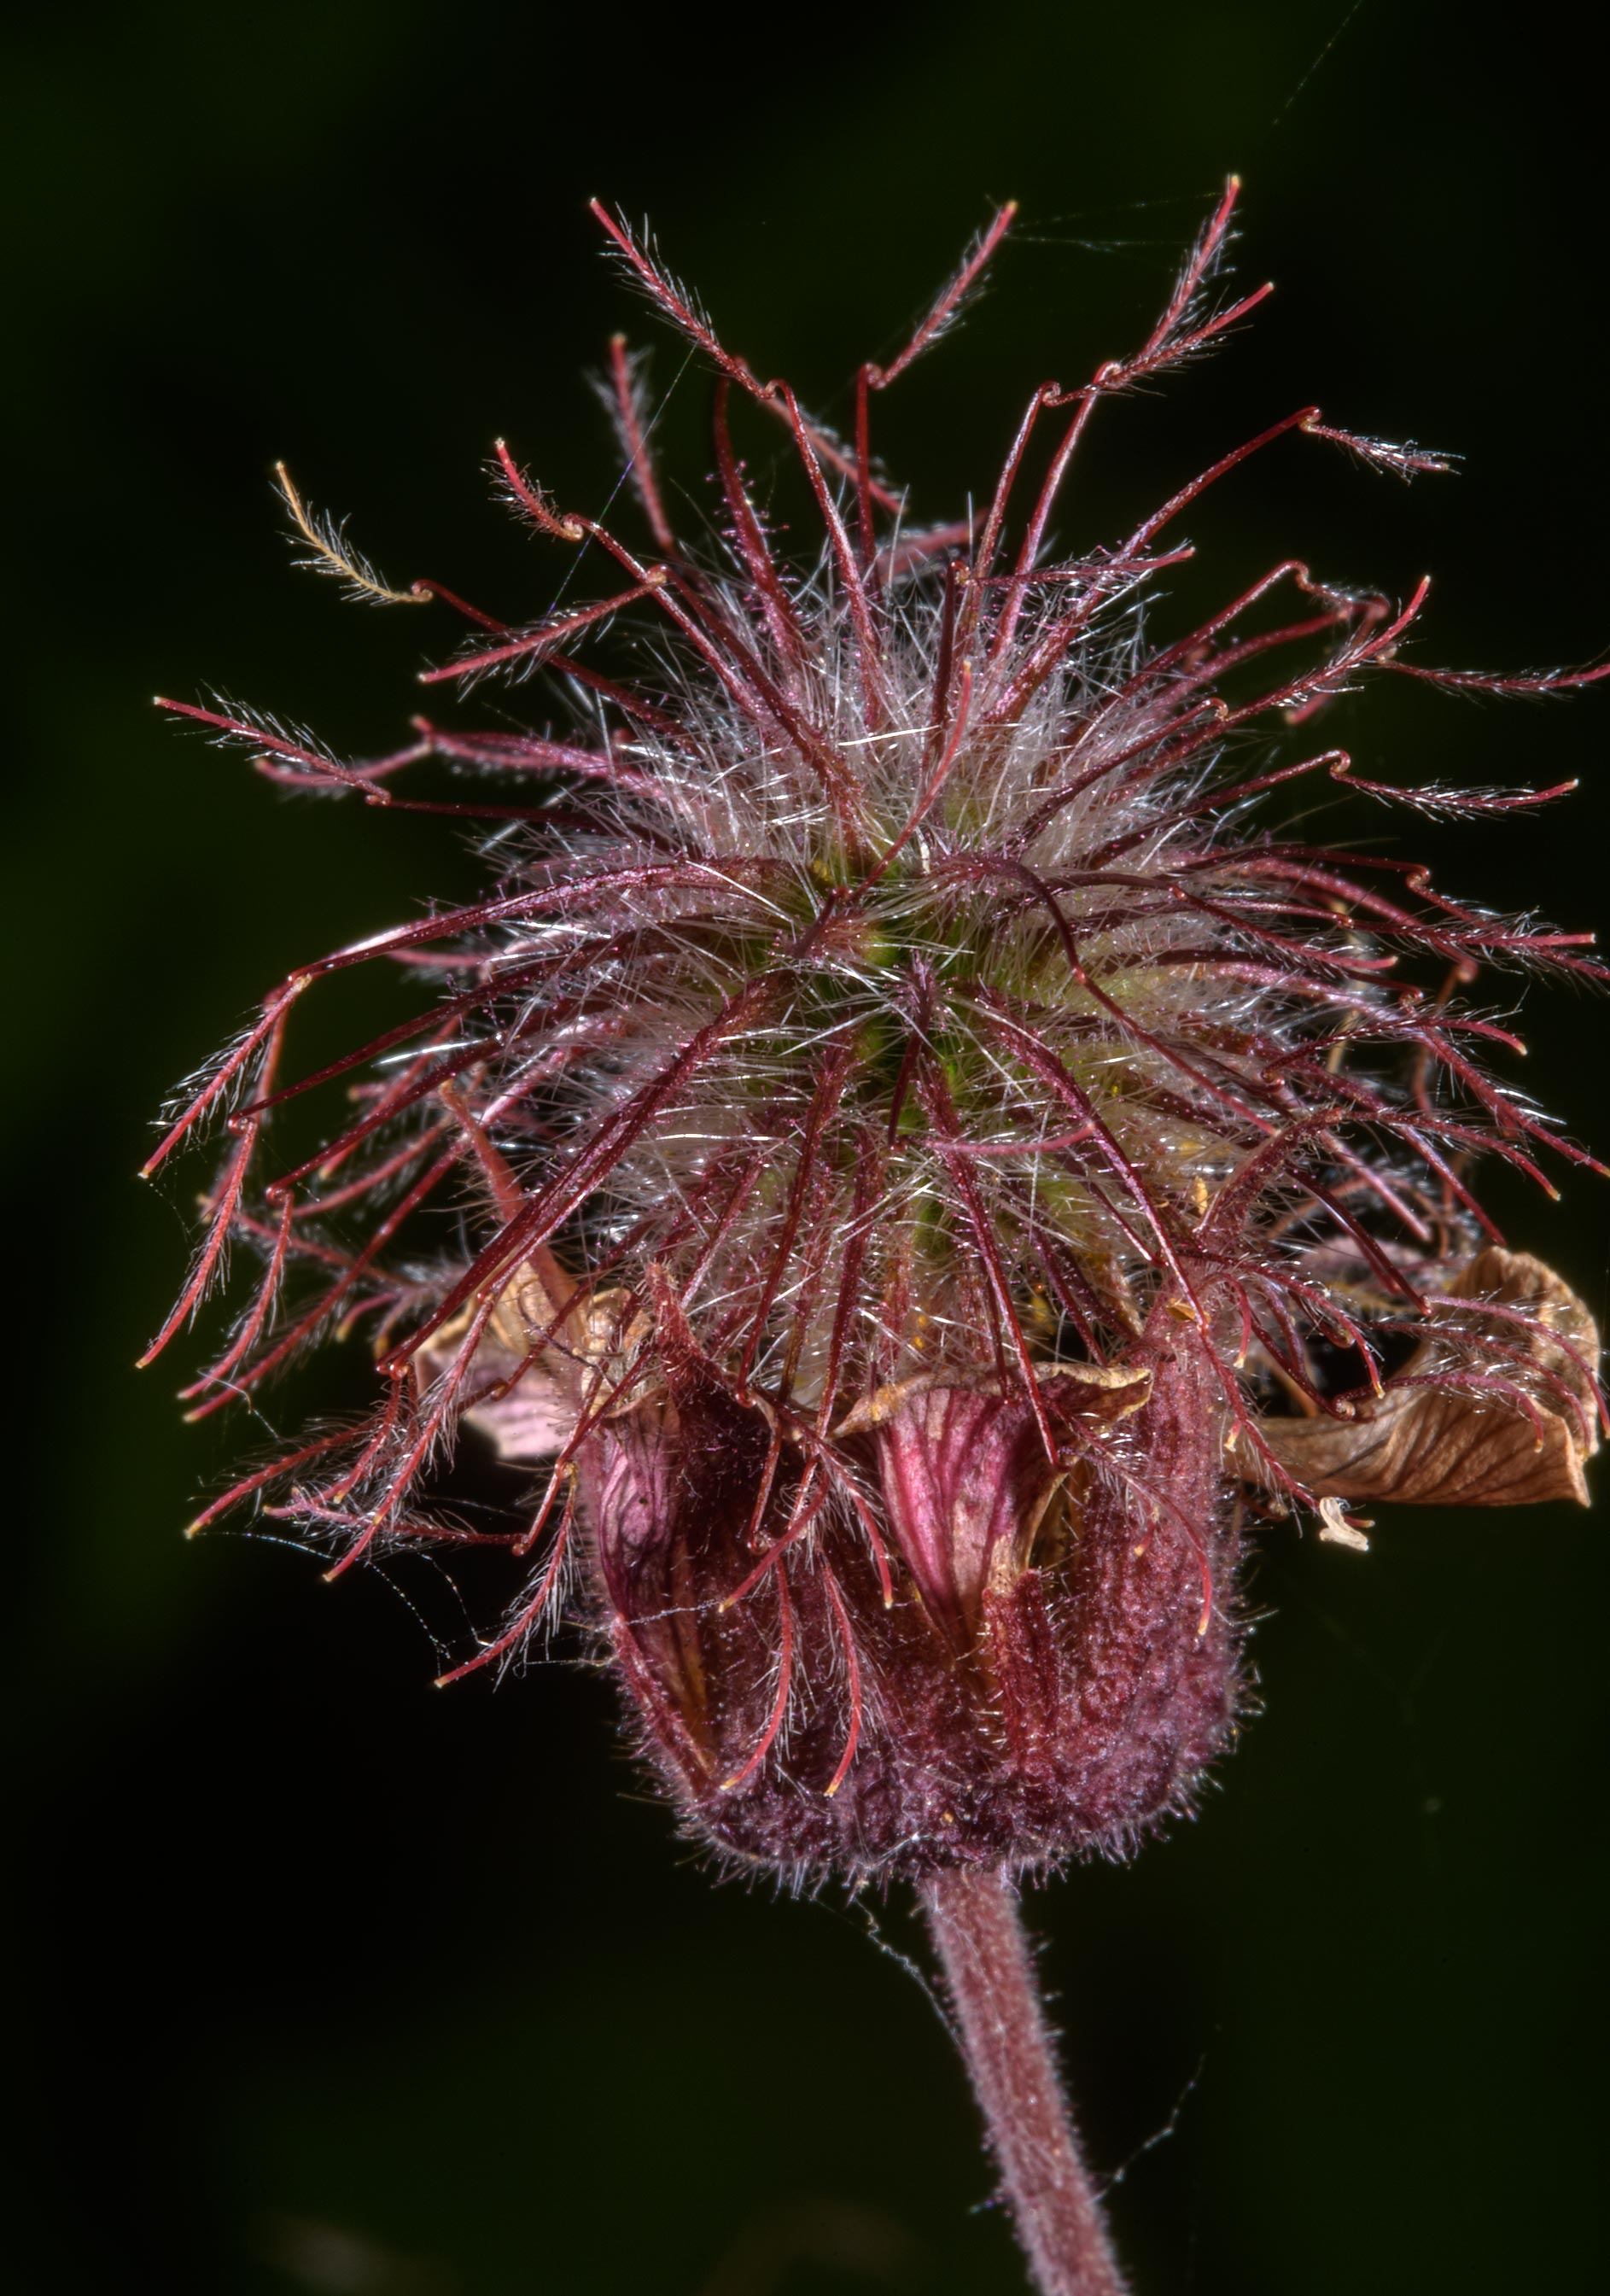 Water Avens (Geum rivale, Russian name Gravilat...south from St.Petersburg, Russia